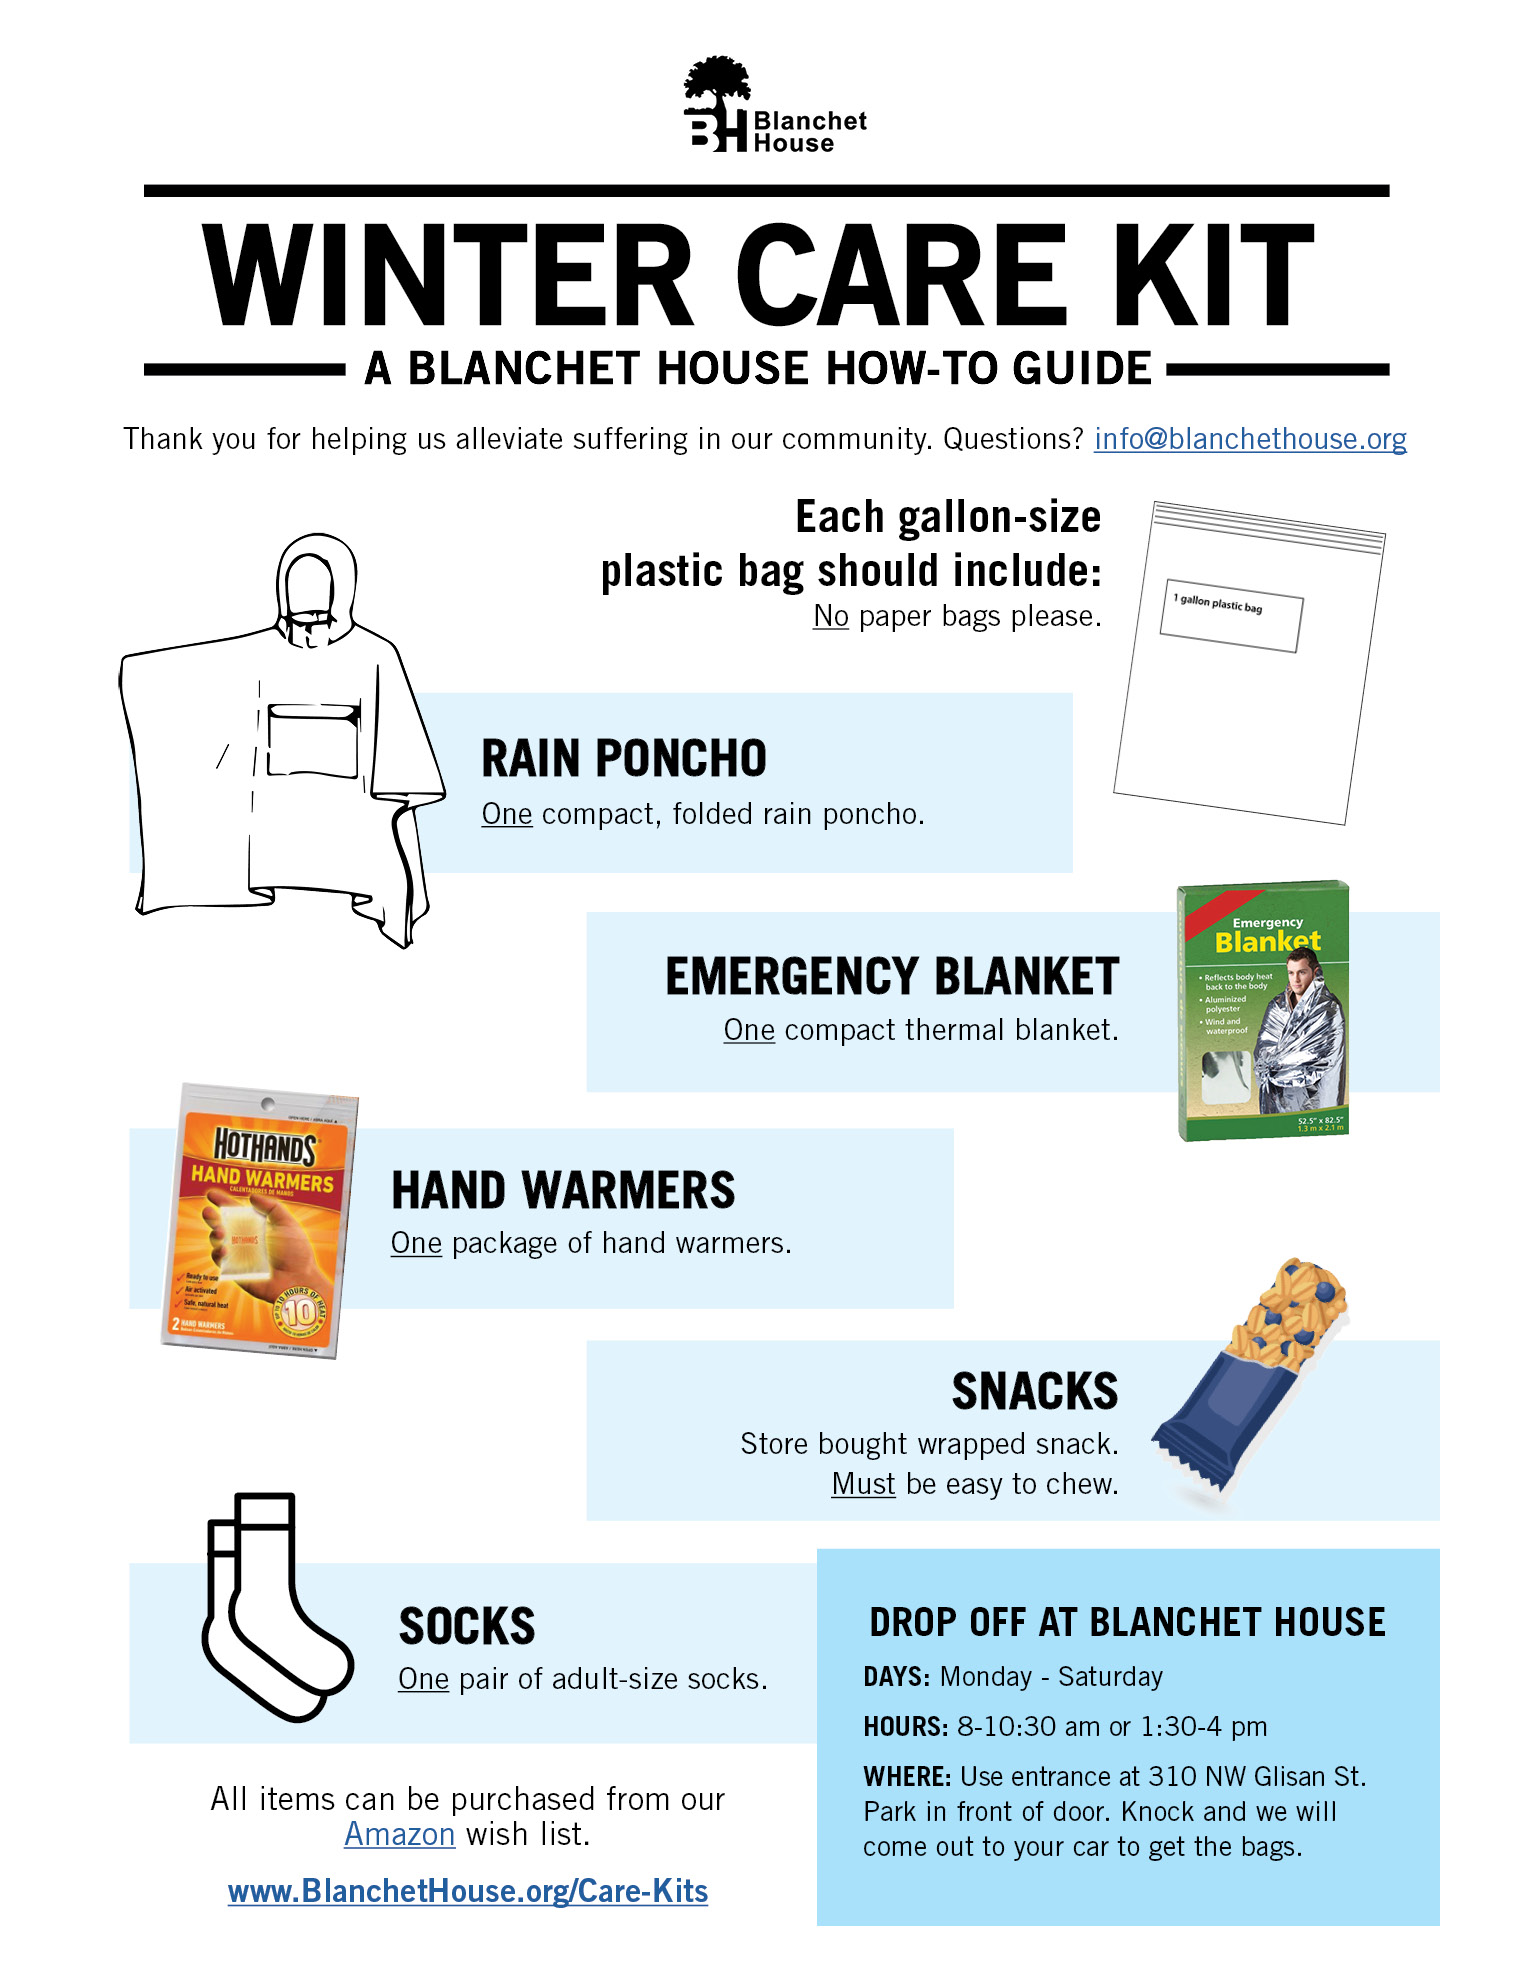 How to Make Winter Care Kits for the Homeless